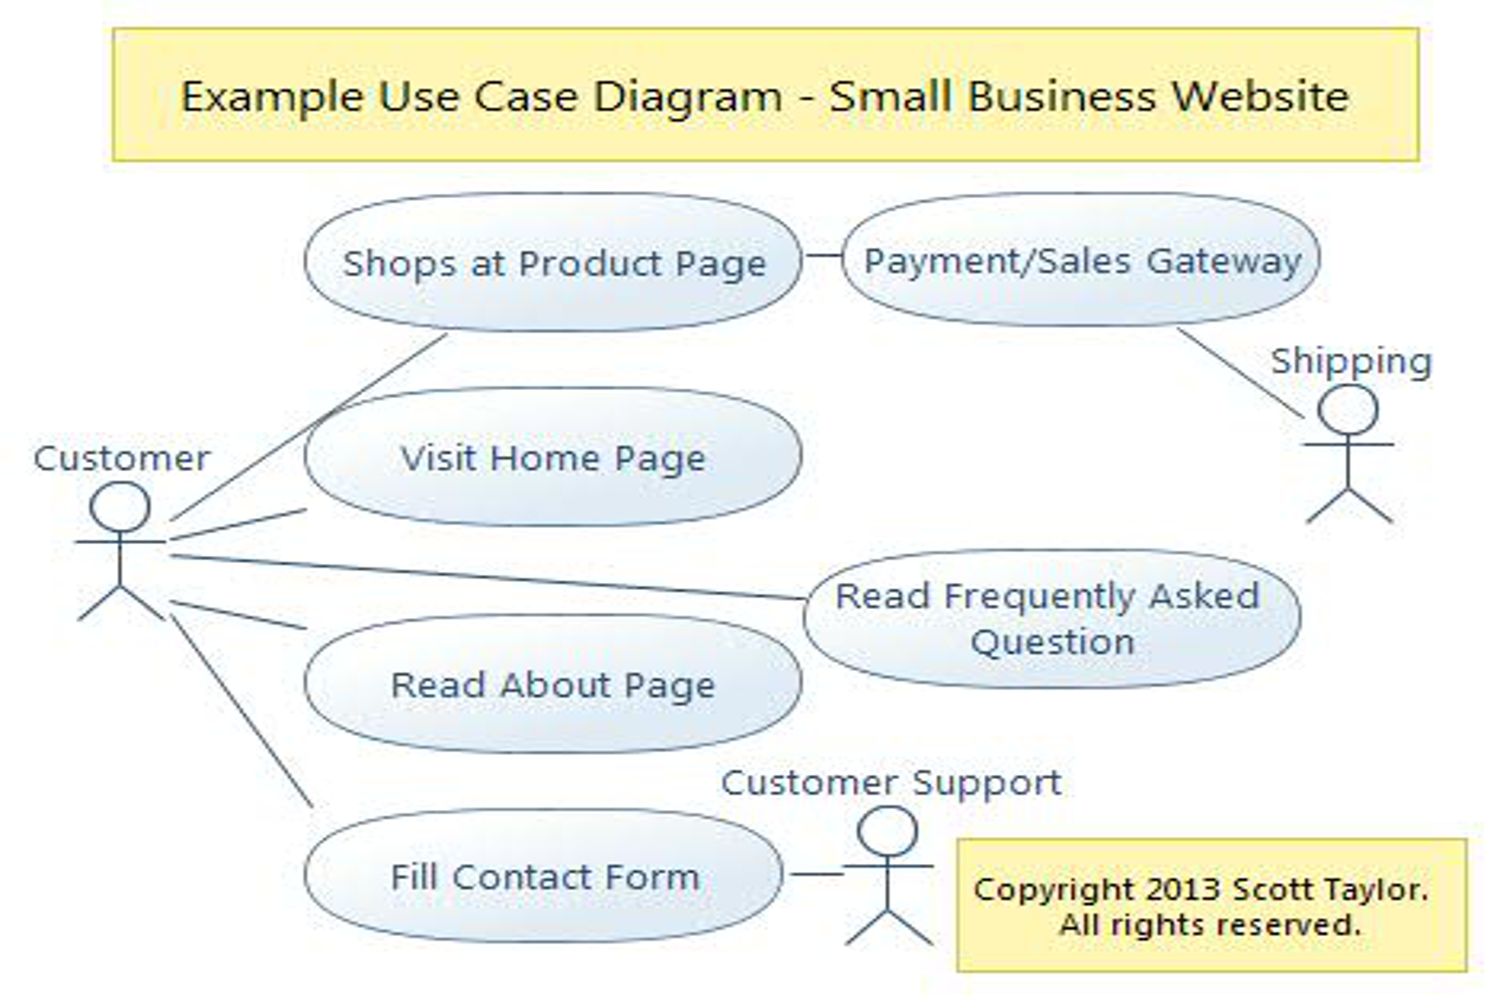 Uml modeling use case diagram by novelterms freelancer on guru related services ccuart Image collections